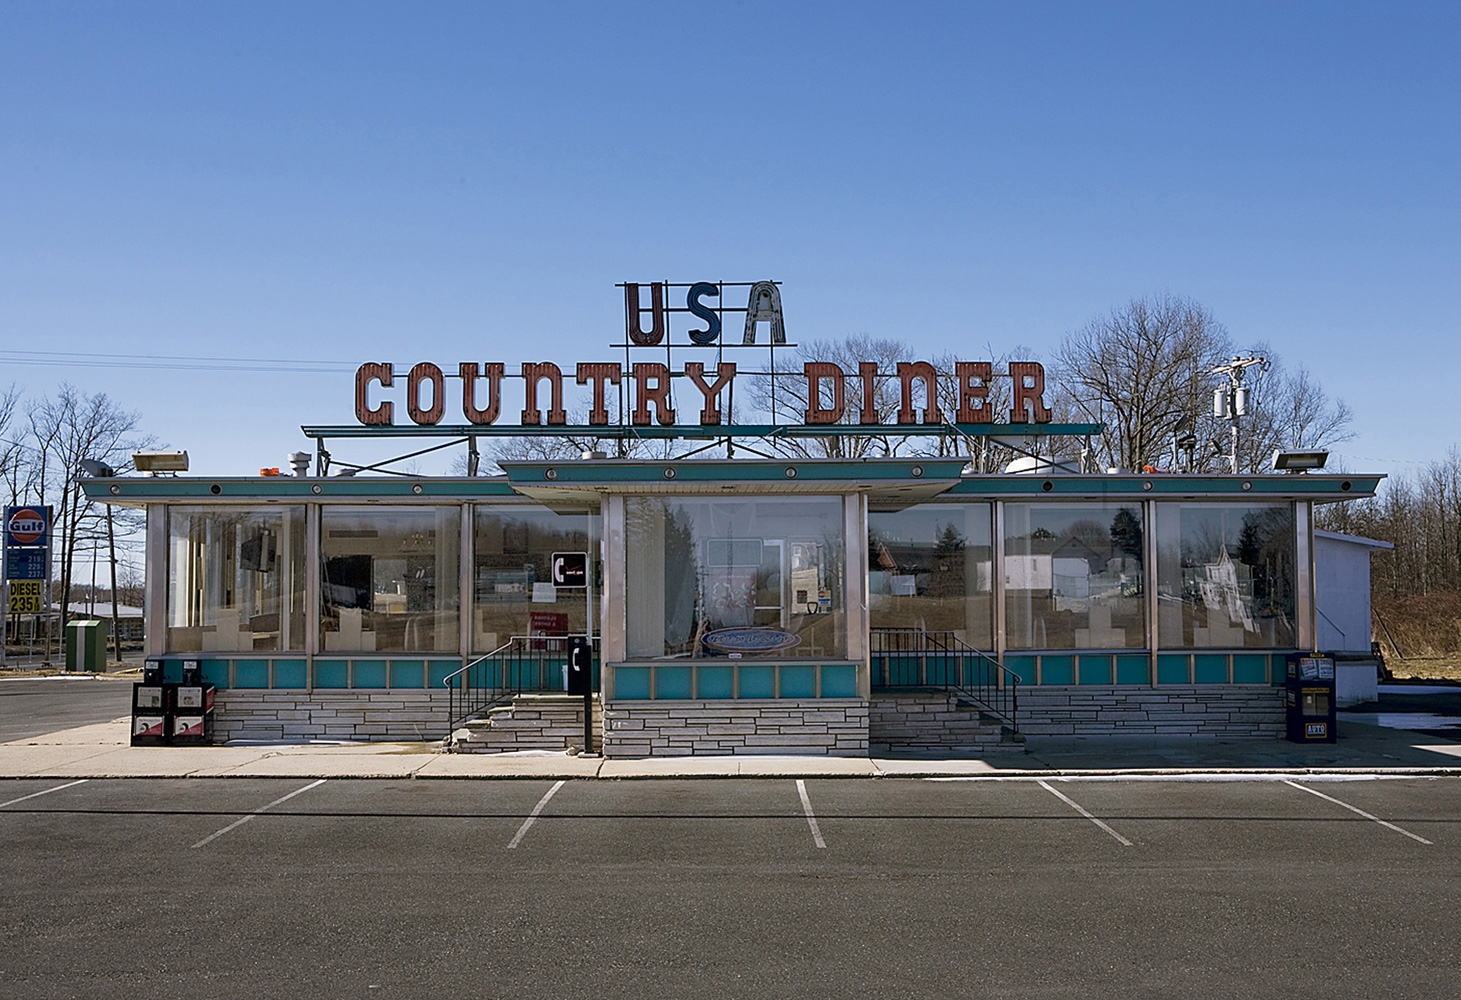 Landscape Photography usa country diner